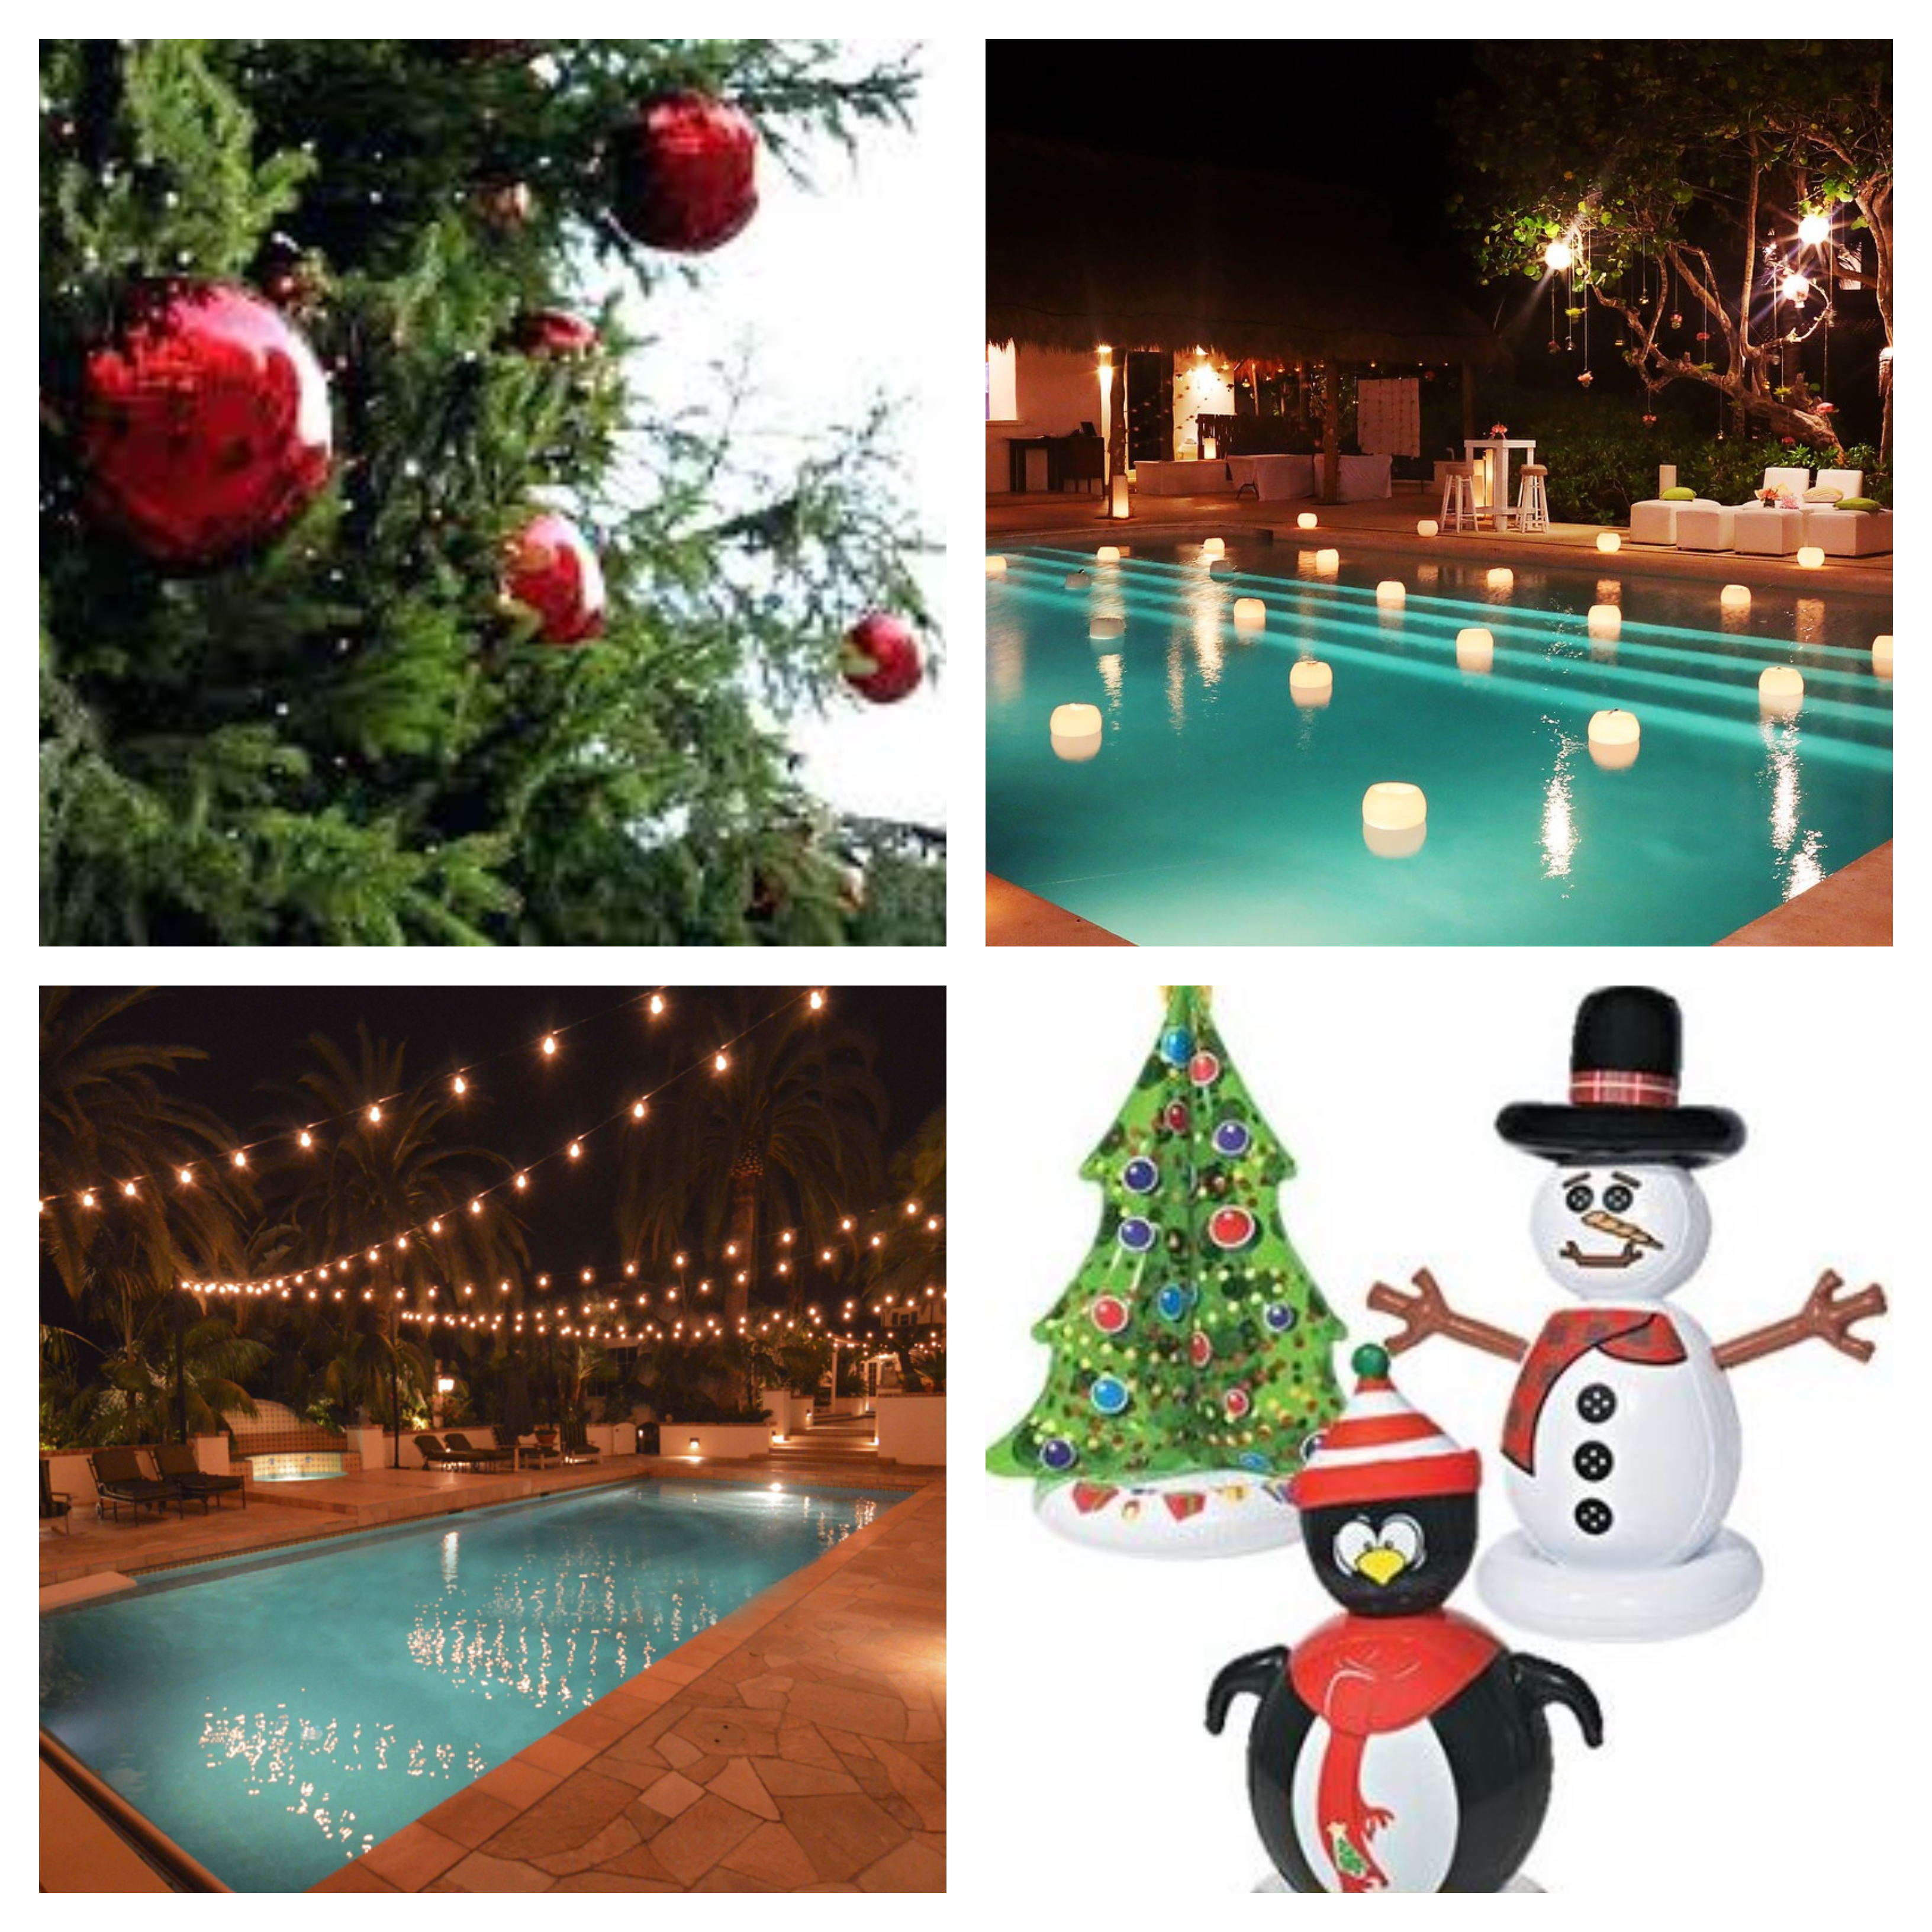 Winter Holiday Outdoor Decor For Your Central Florida Pool